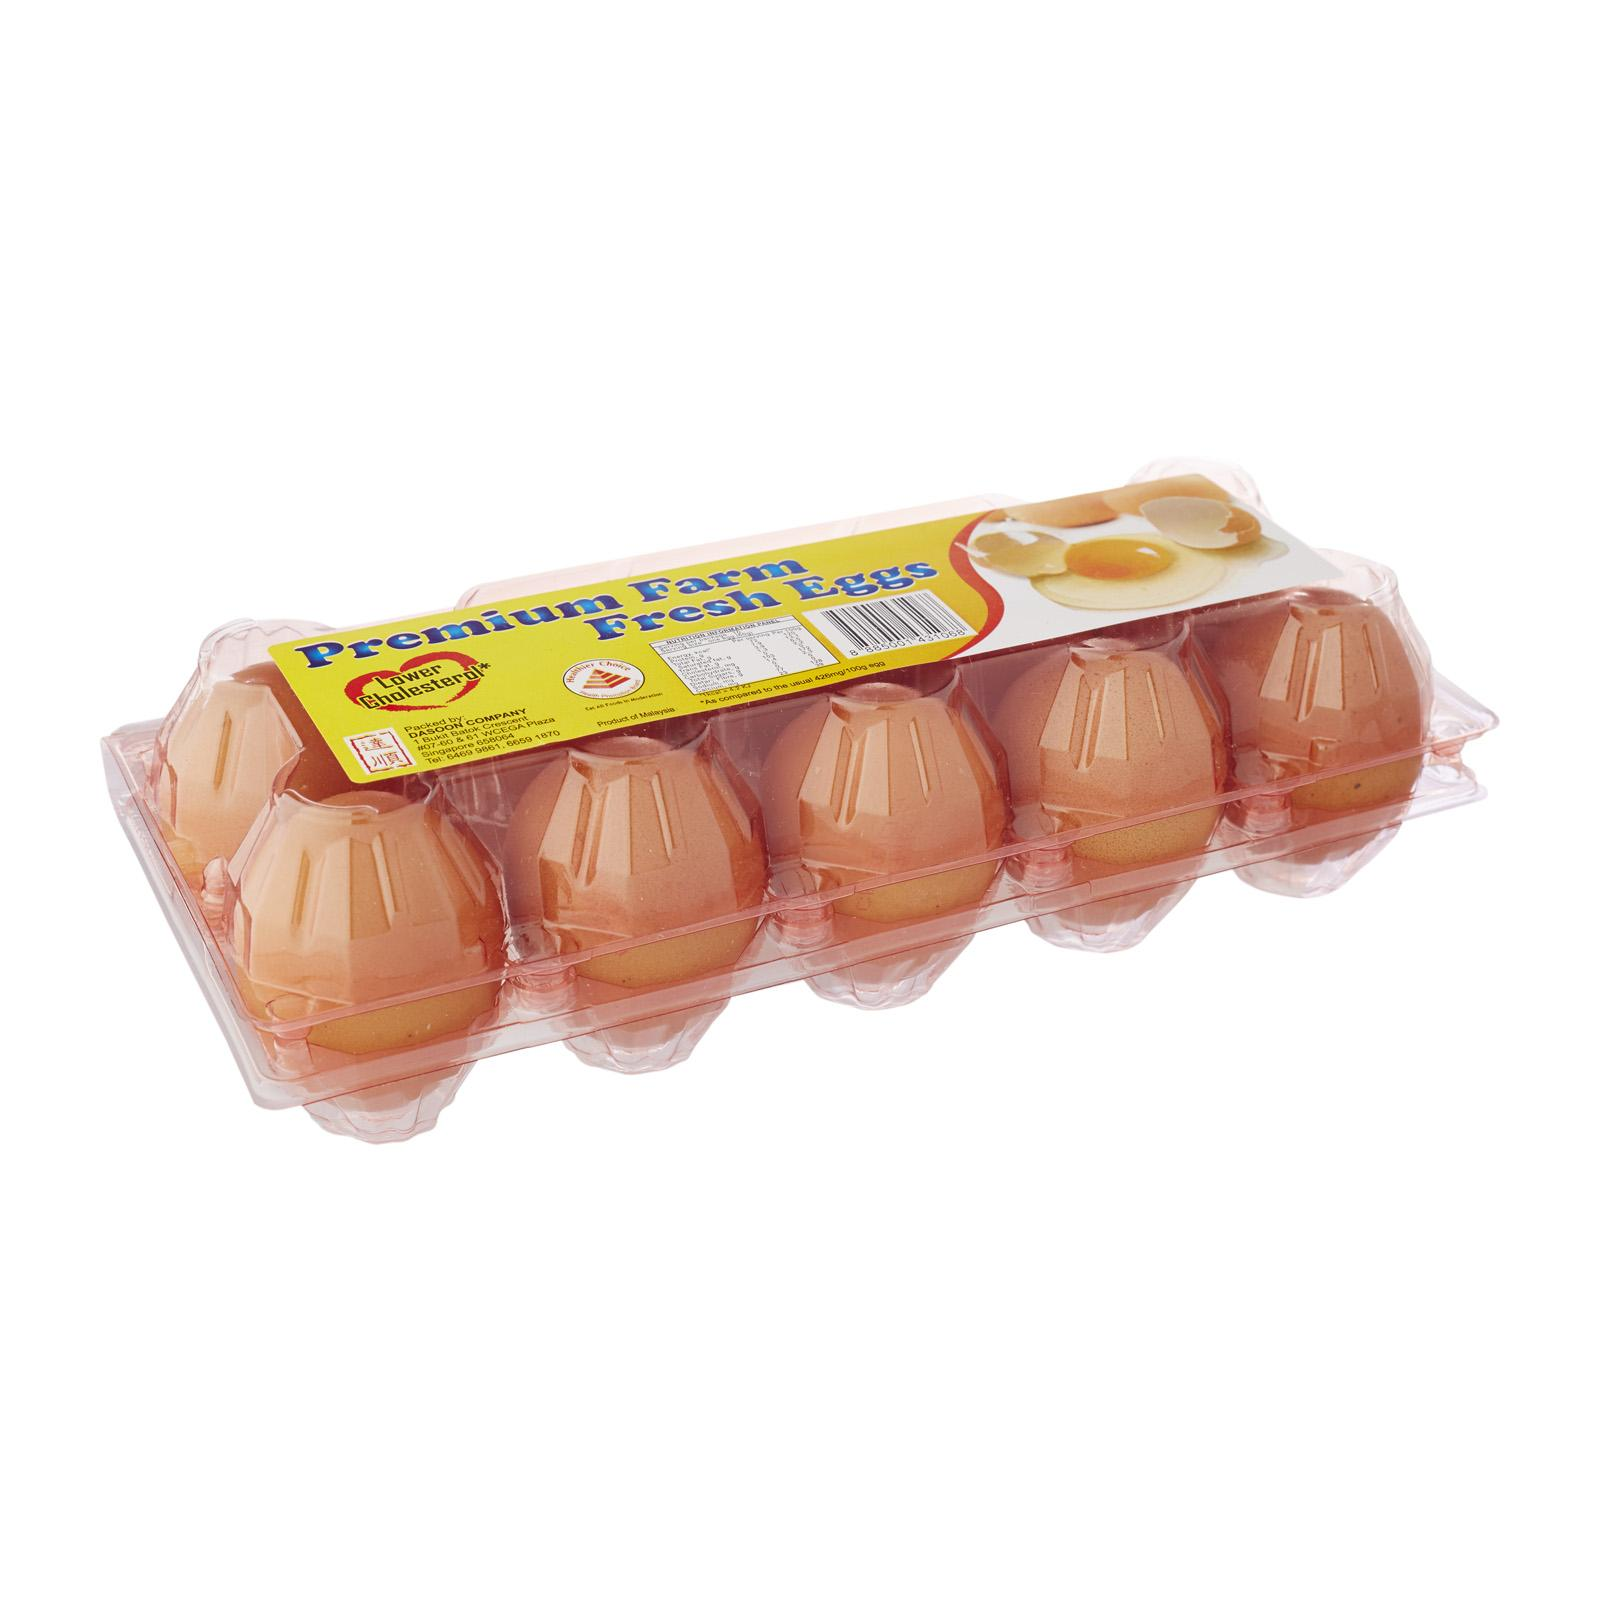 Dasoon Lower Cholestrol Fresh Eggs 10S (Keep Chilled)